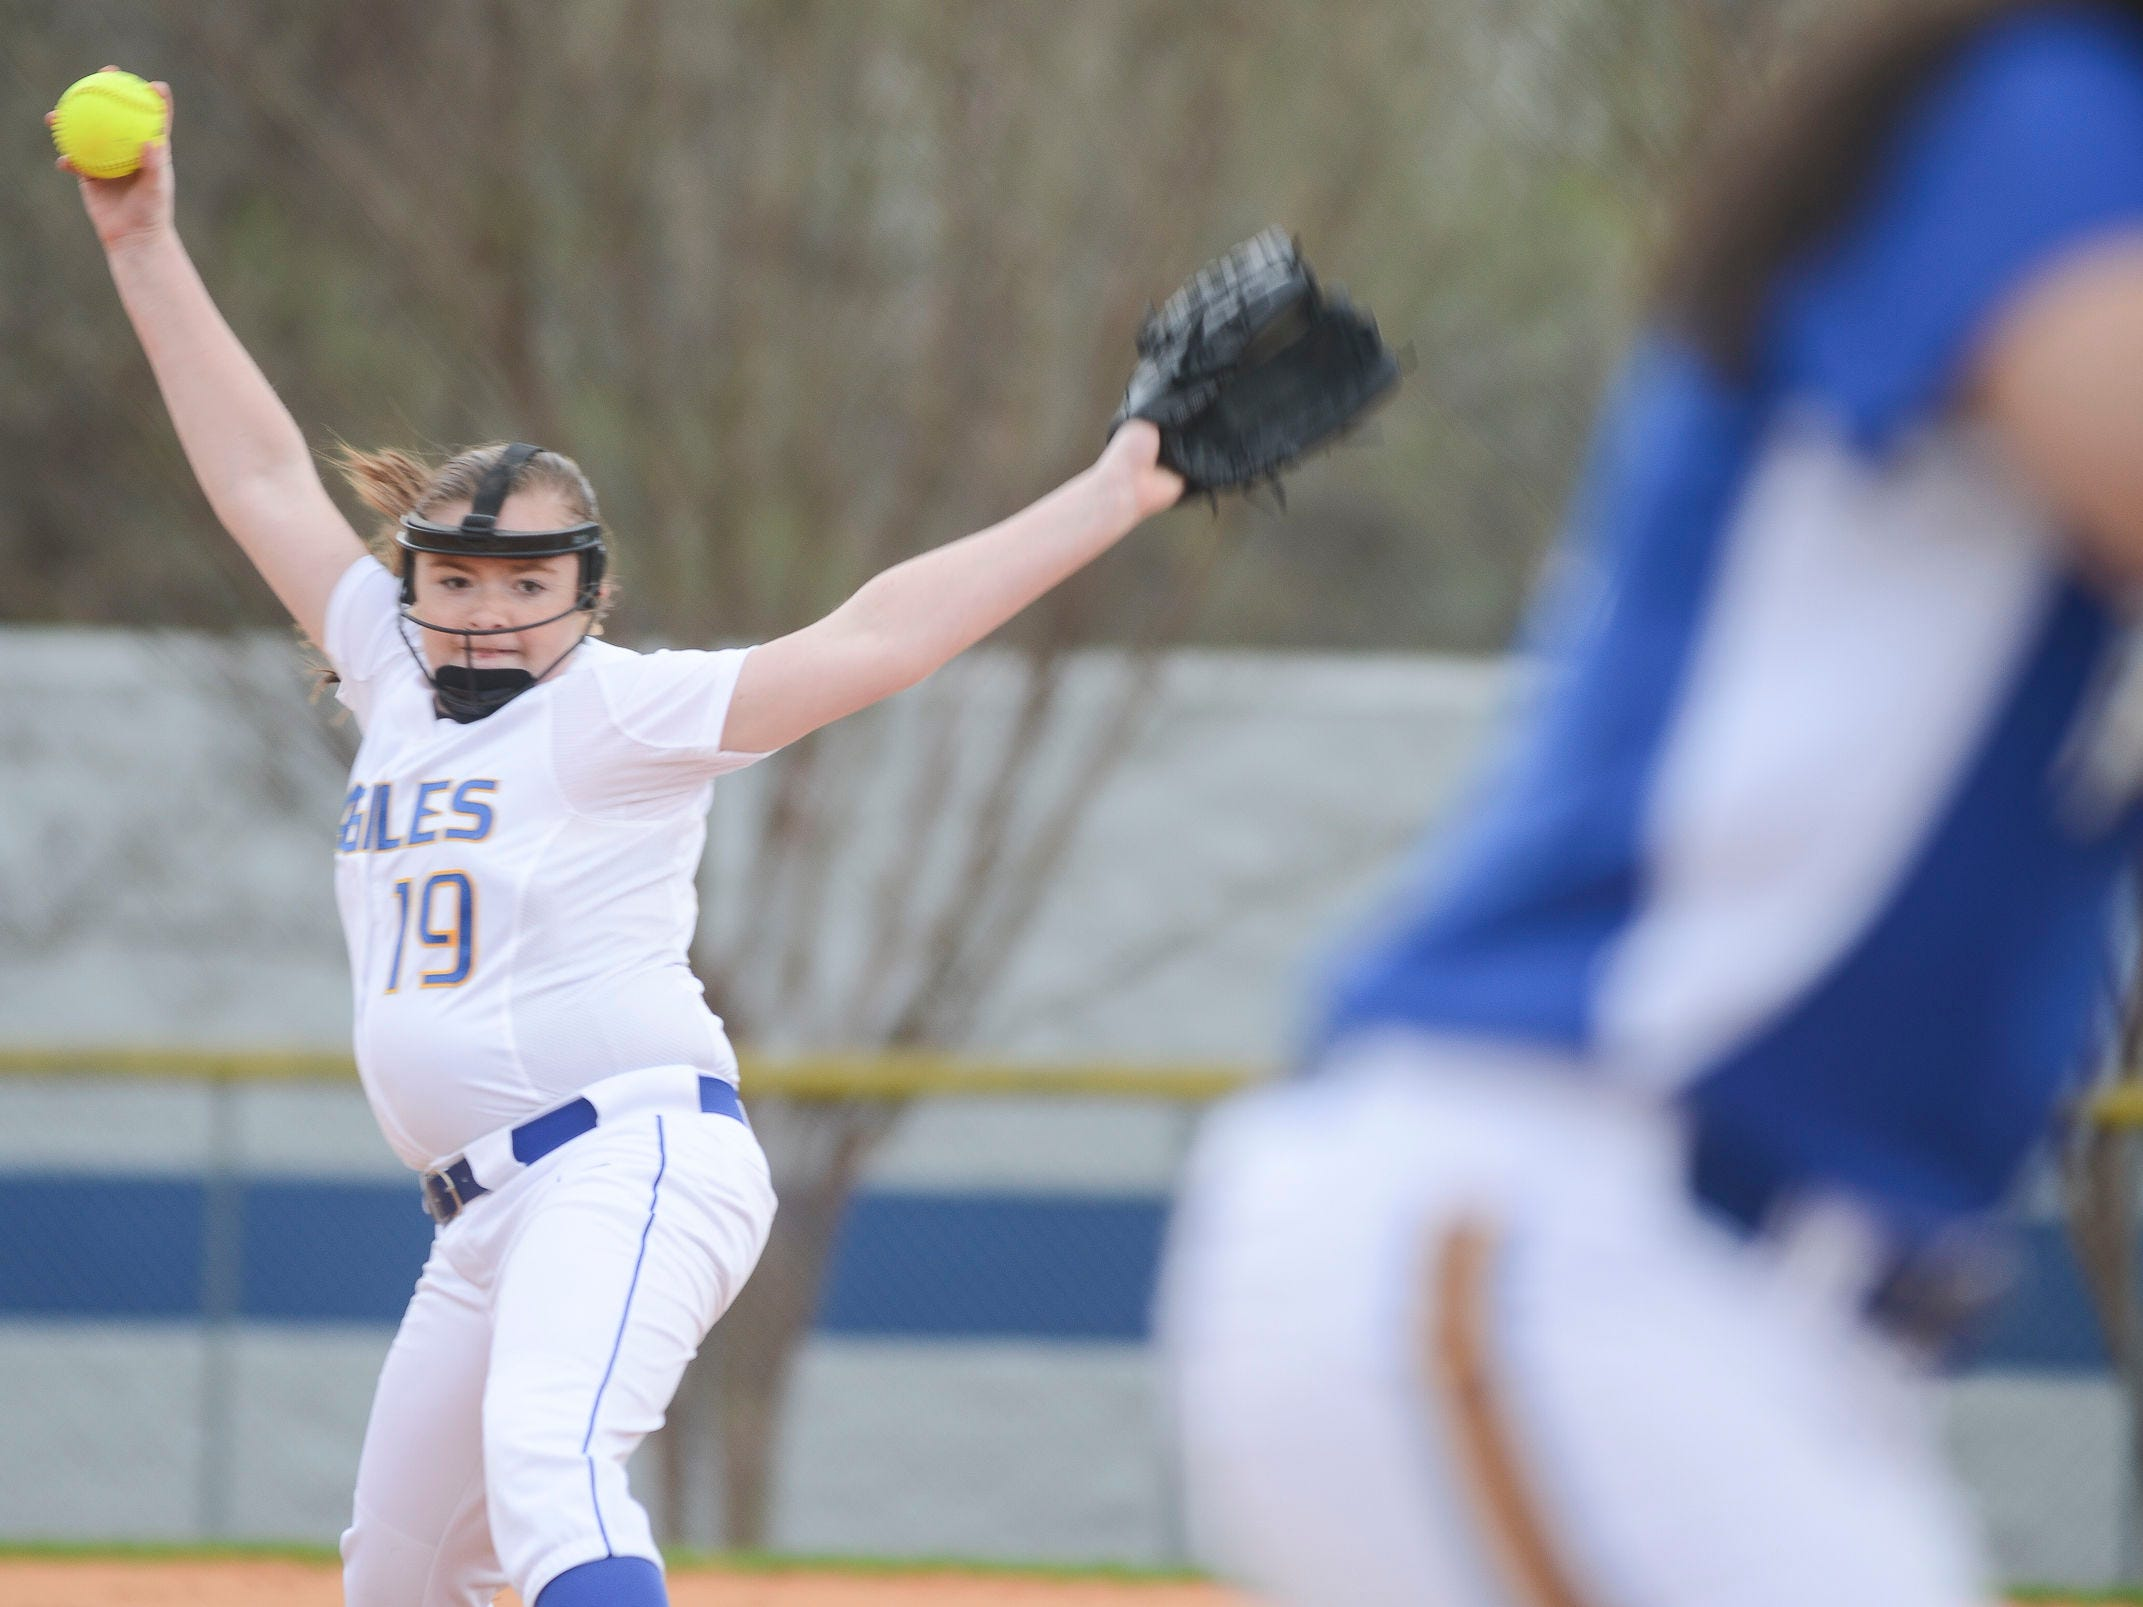 Jackson Christian's Jenna Arnold is already starting at pitcher as an eighth-grader.